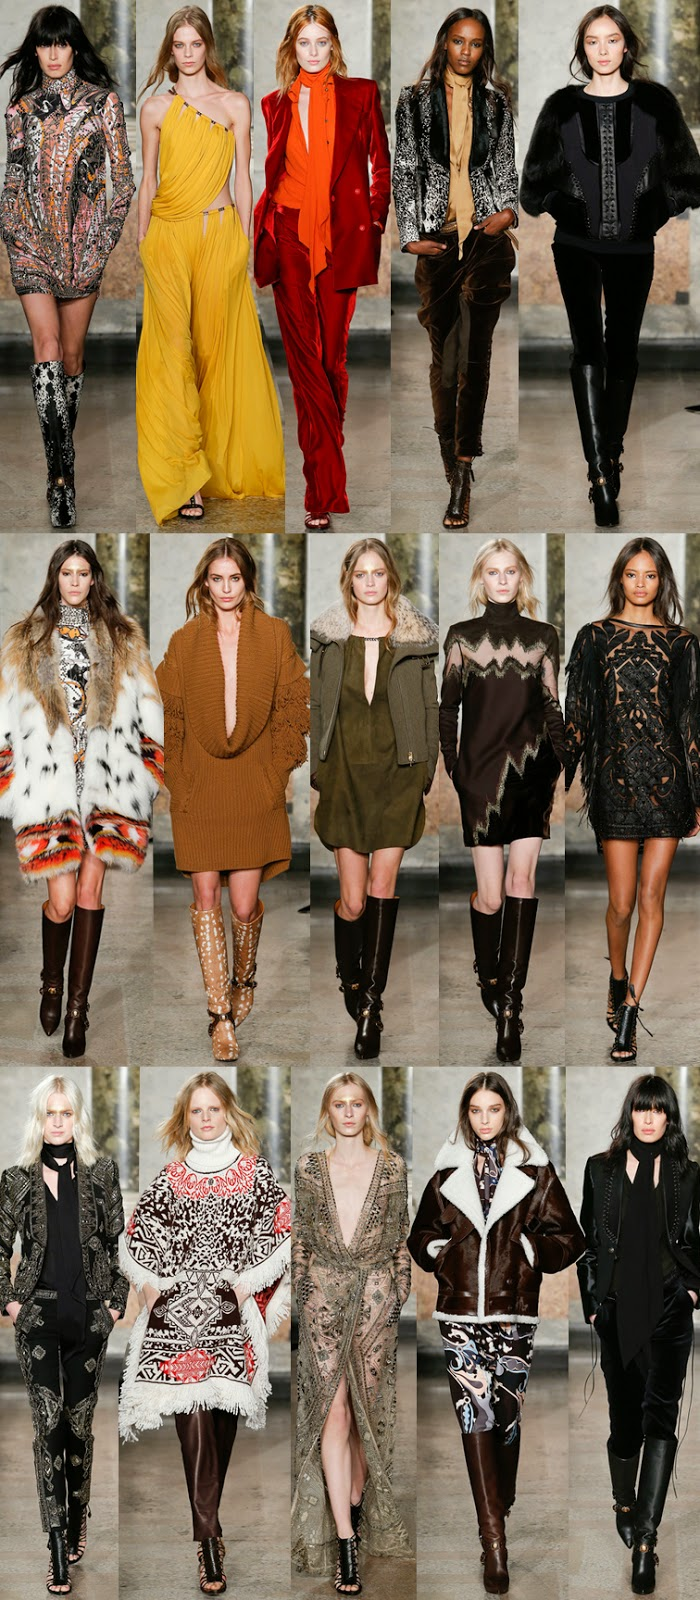 Emilio Pucci by Peter Dundas fall winter 2014 runway collection, FW14, AW14, MFW, Milan fashion week